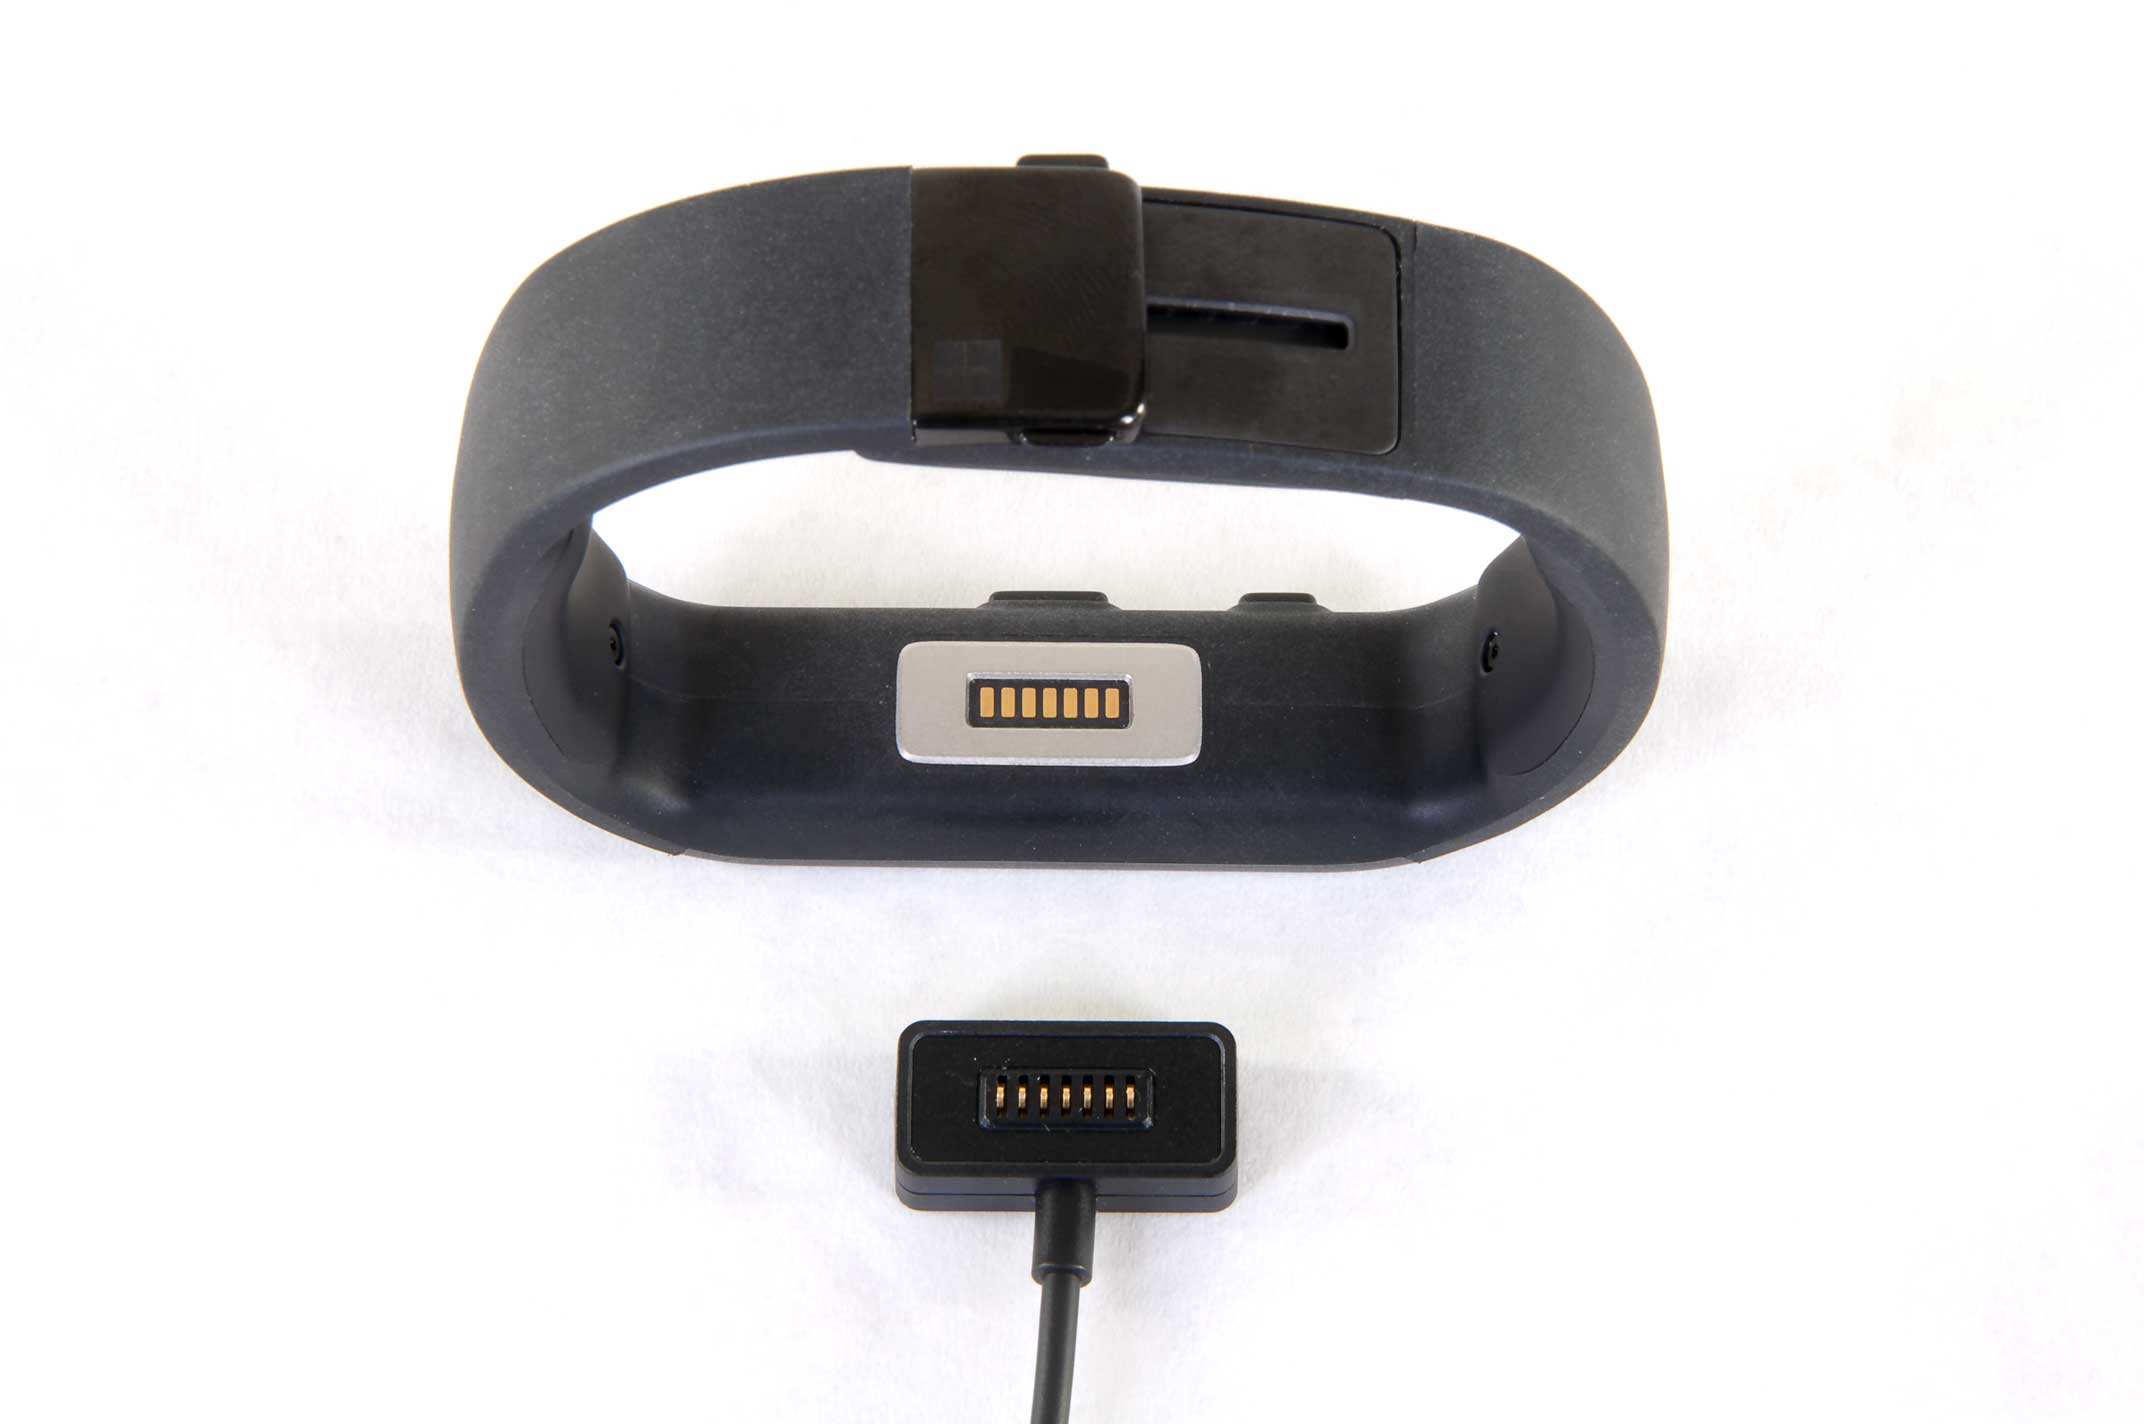 for the Microsoft Band...